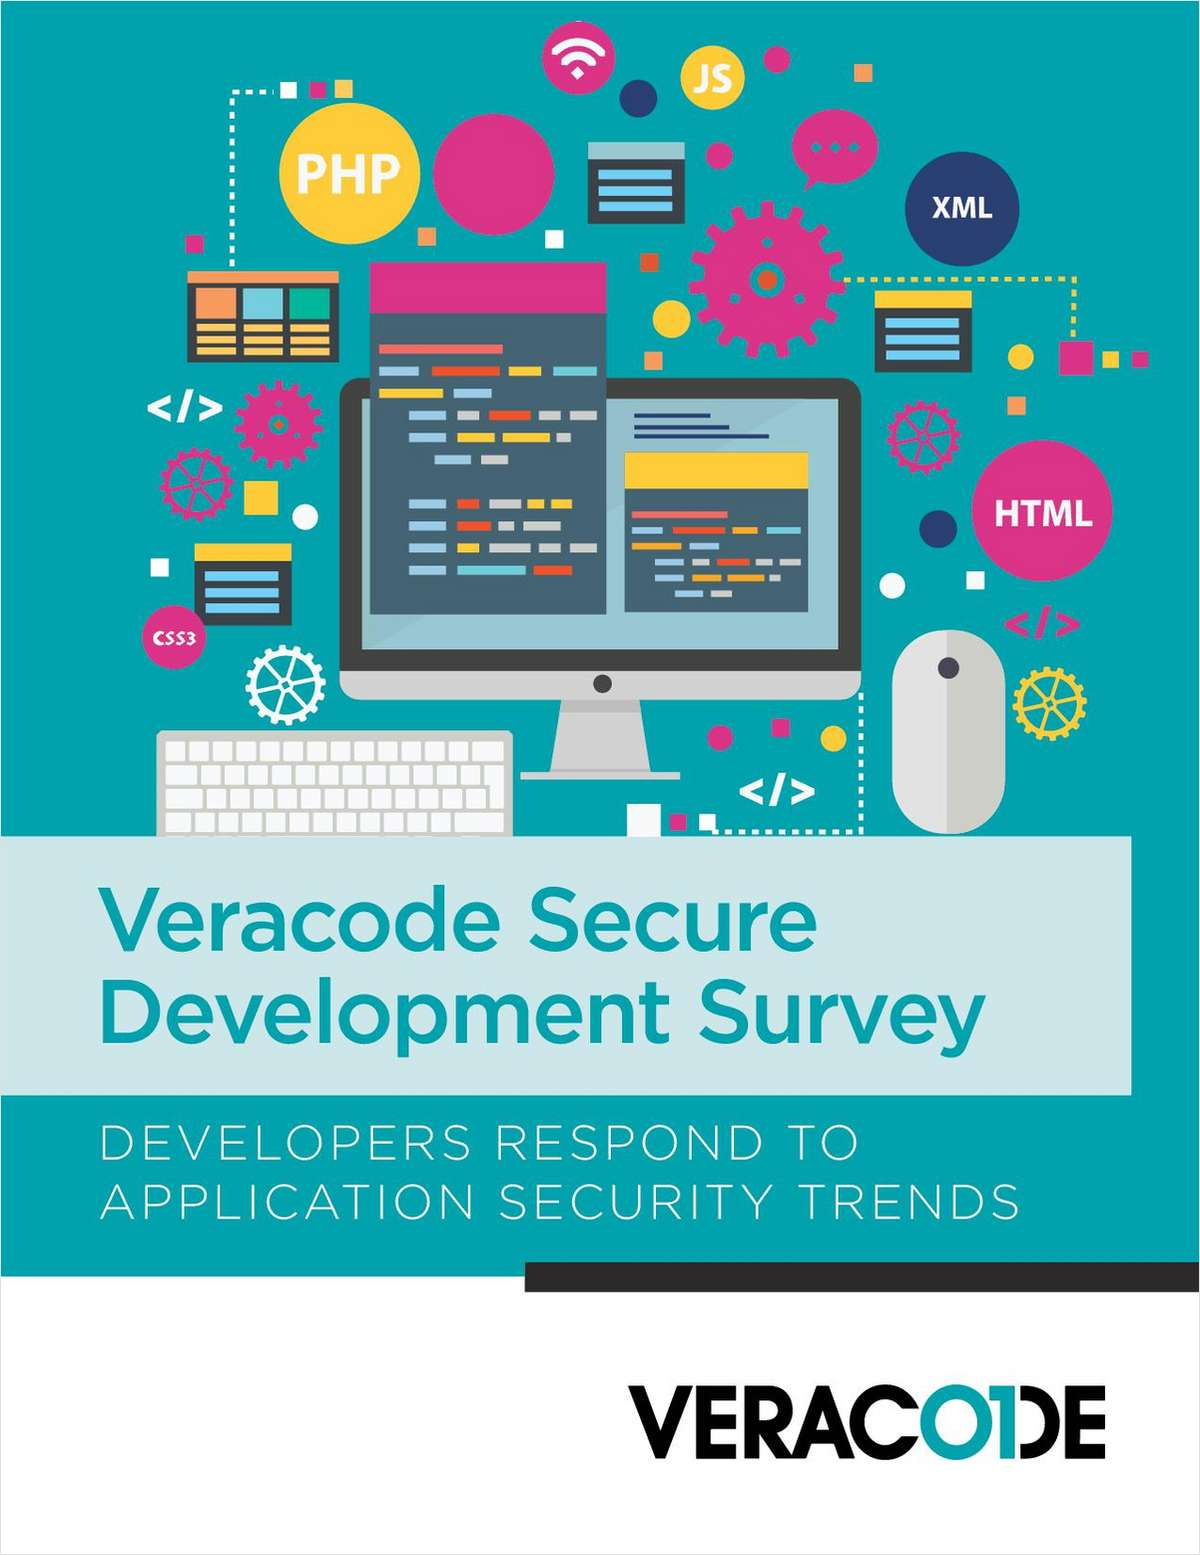 Veracode Secure Development Survey